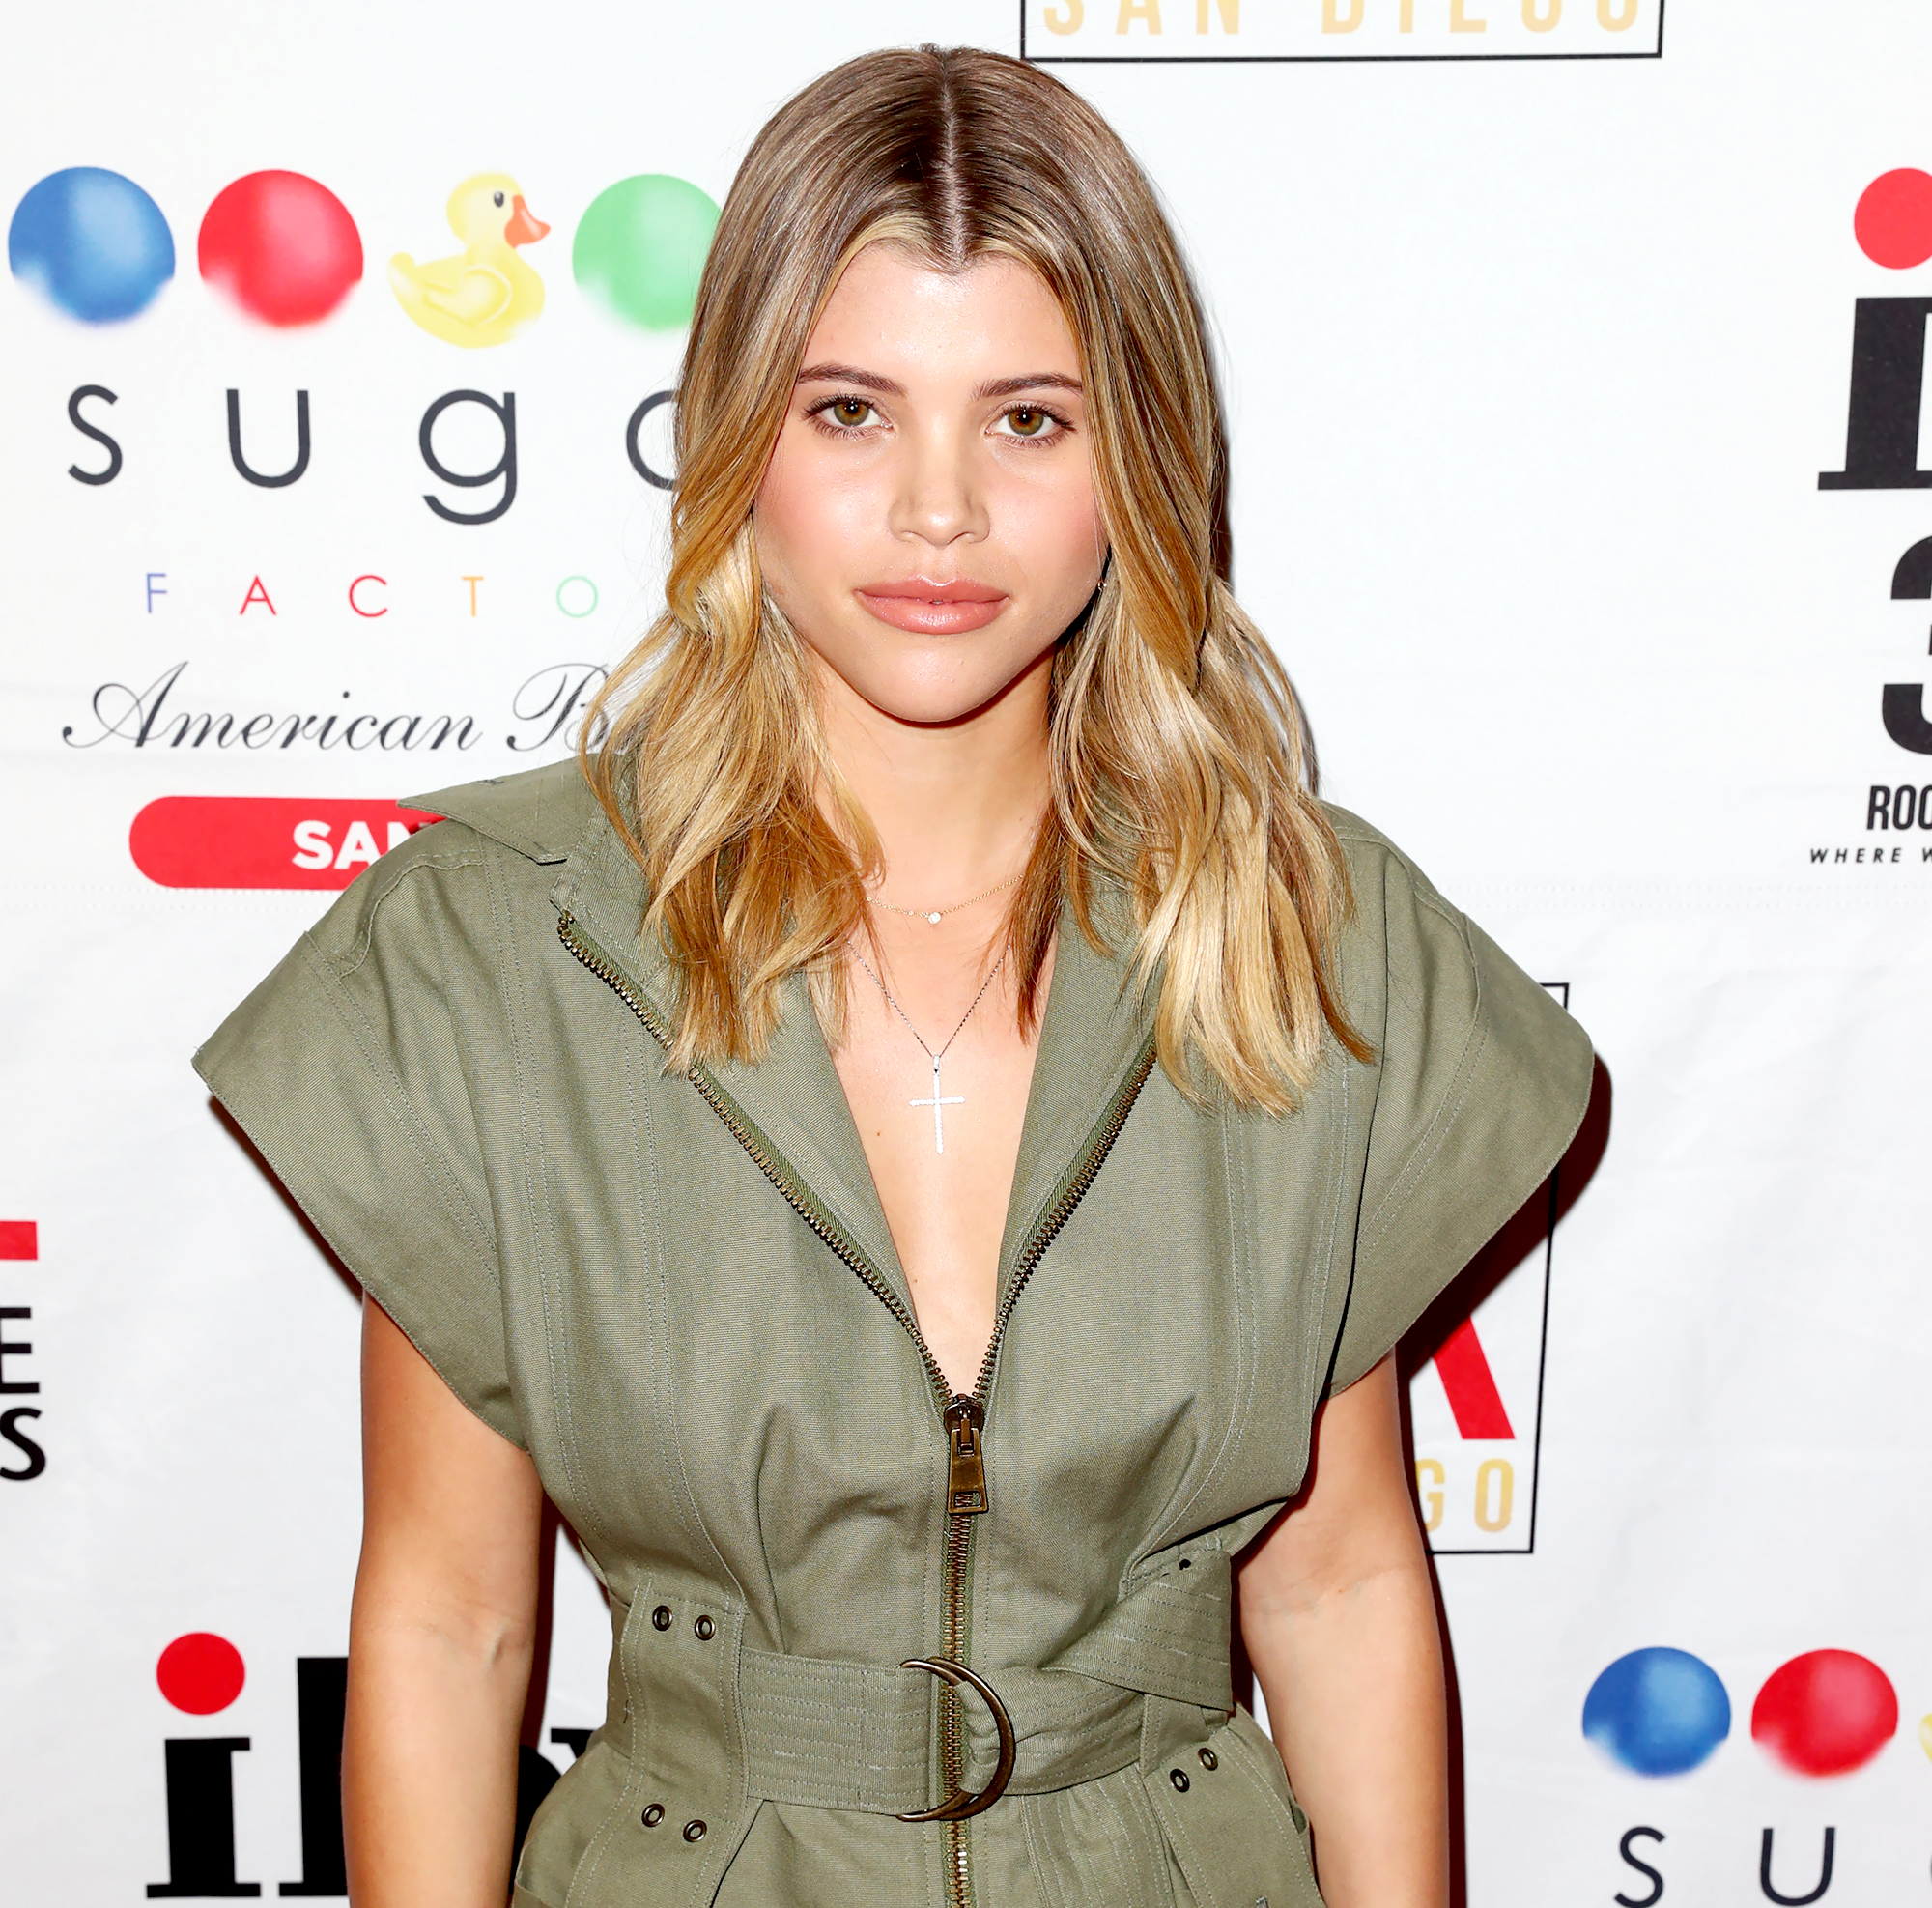 Sofia-Richie-keeping-up-with-the-kardashians - Sofia Richie celebrates Valentine's Day at San Diego's new Theatre Box® Entertainment Complex with dinner at Sugar Factory American Brasserie at Theatre Box® on February 14, 2019 in San Diego, California.